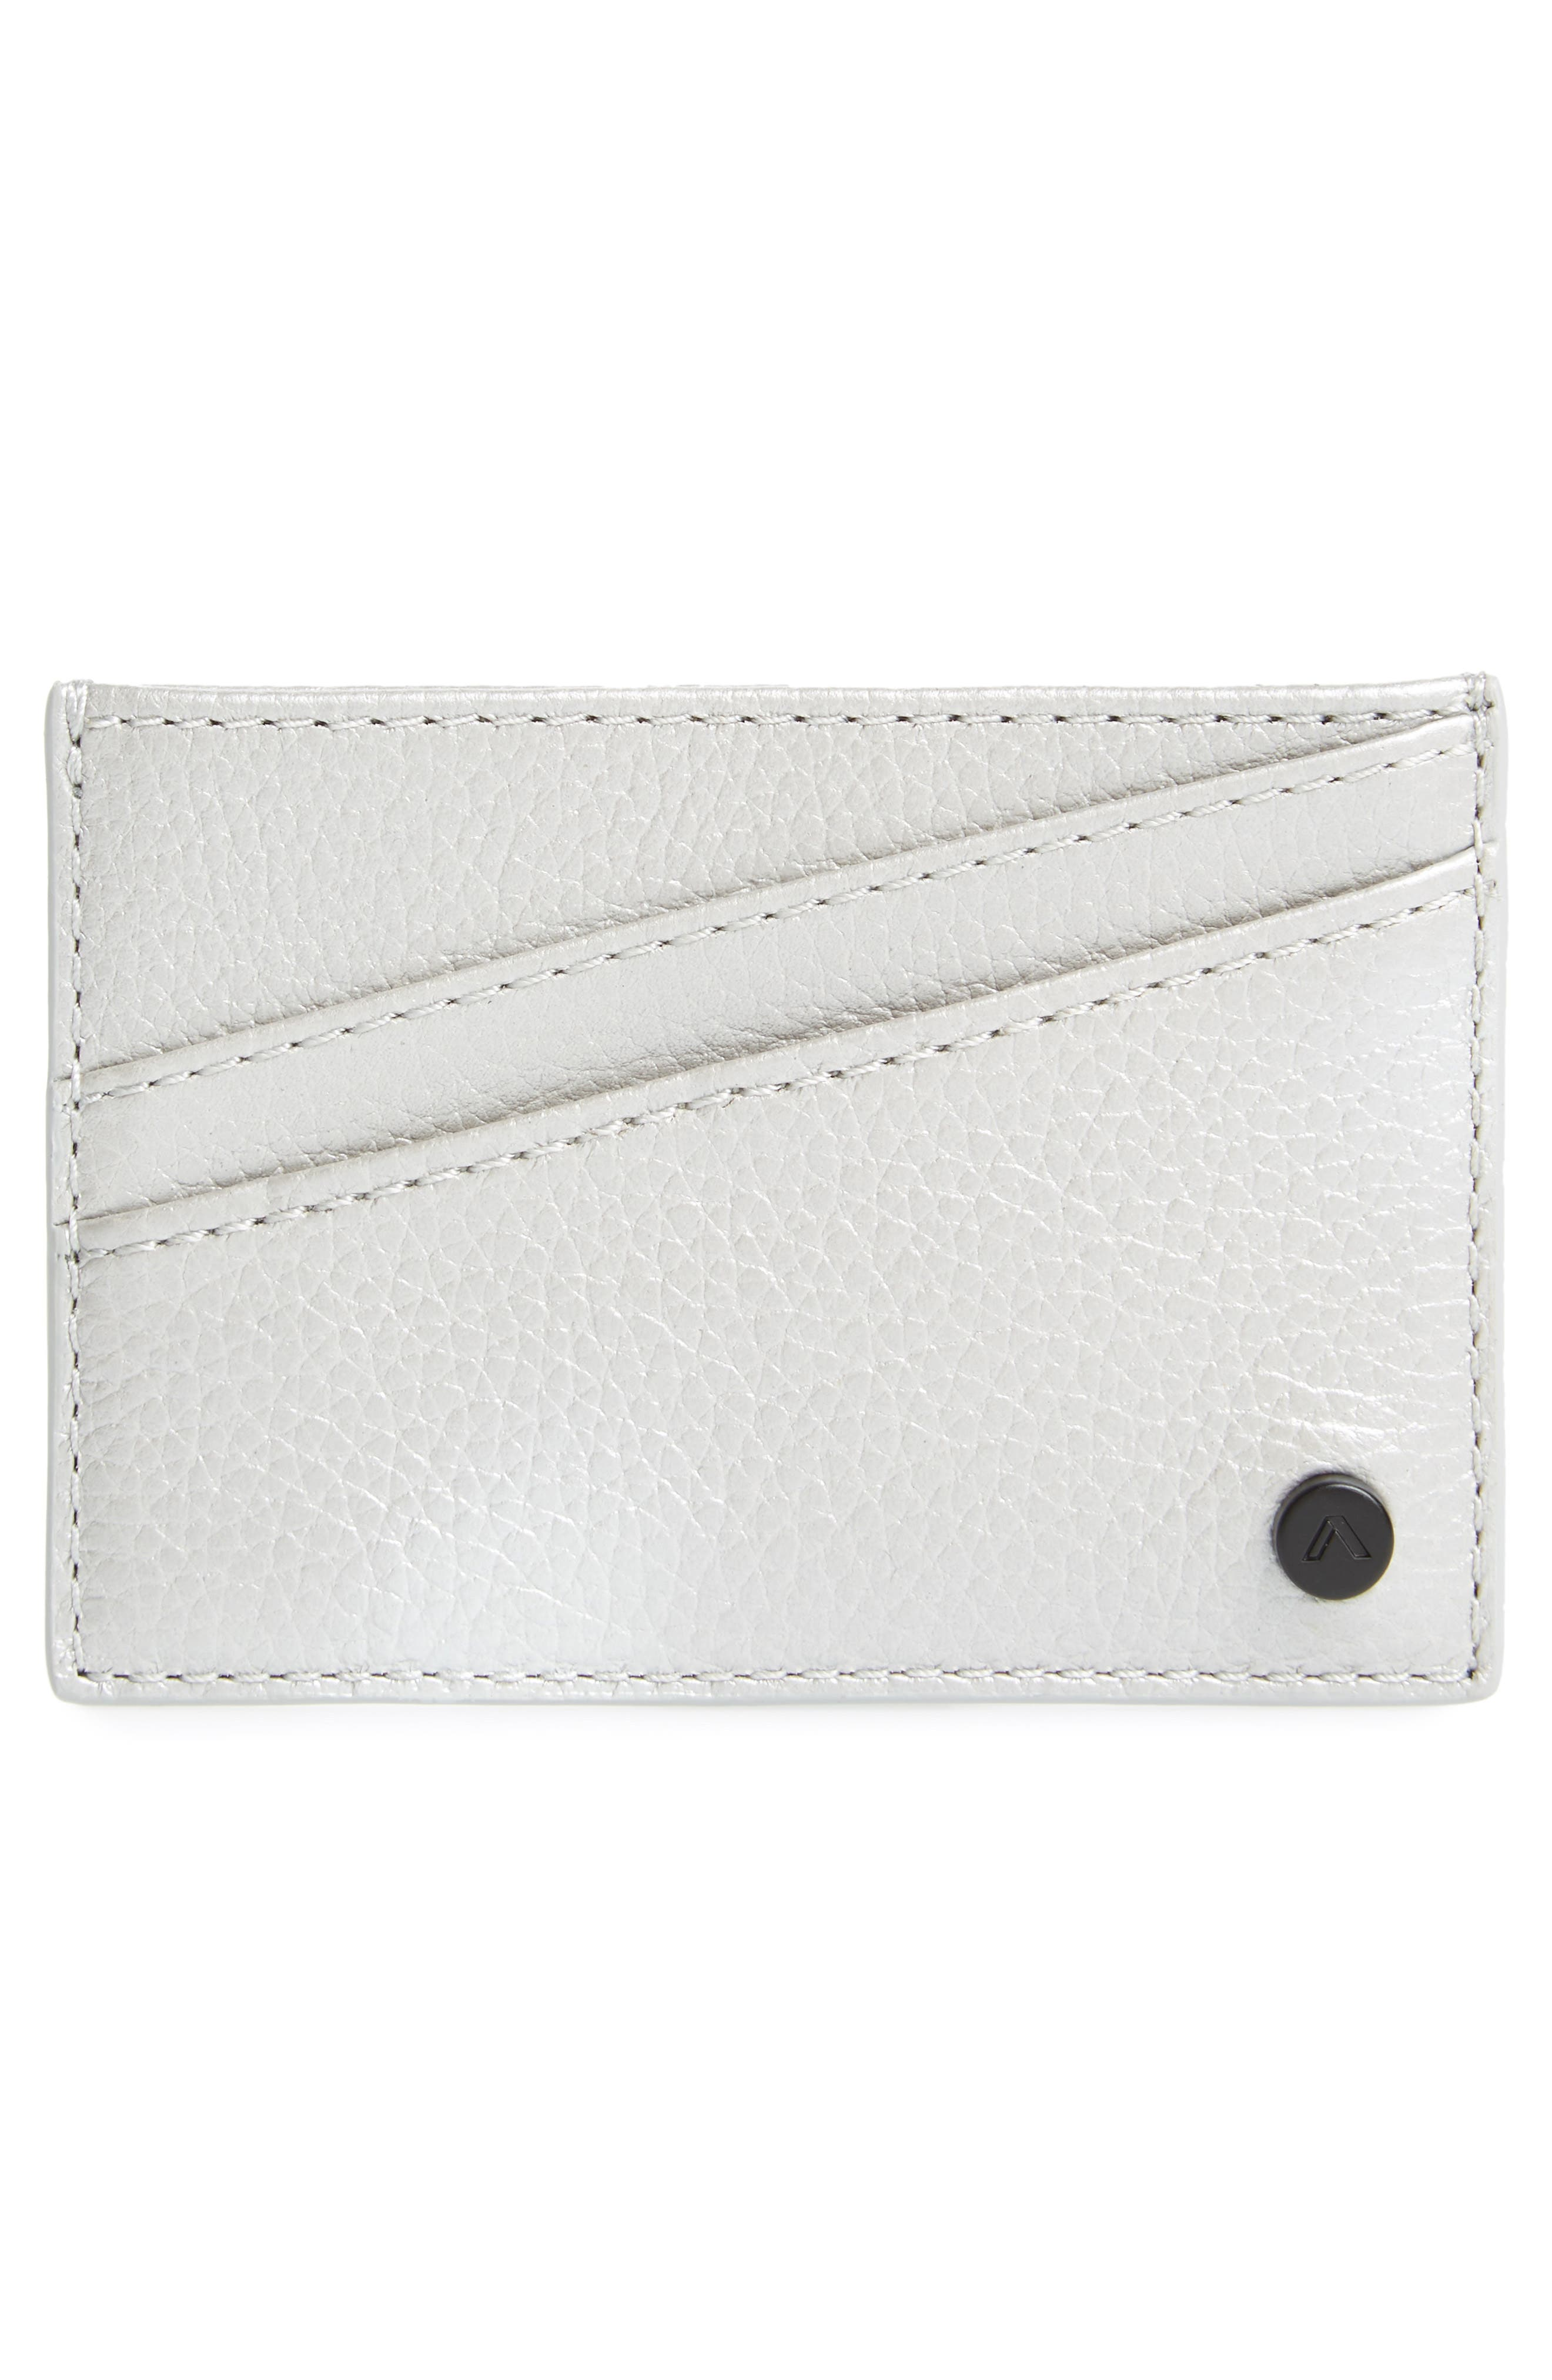 Greenwood Monaco Leather Card Case,                             Alternate thumbnail 2, color,                             040